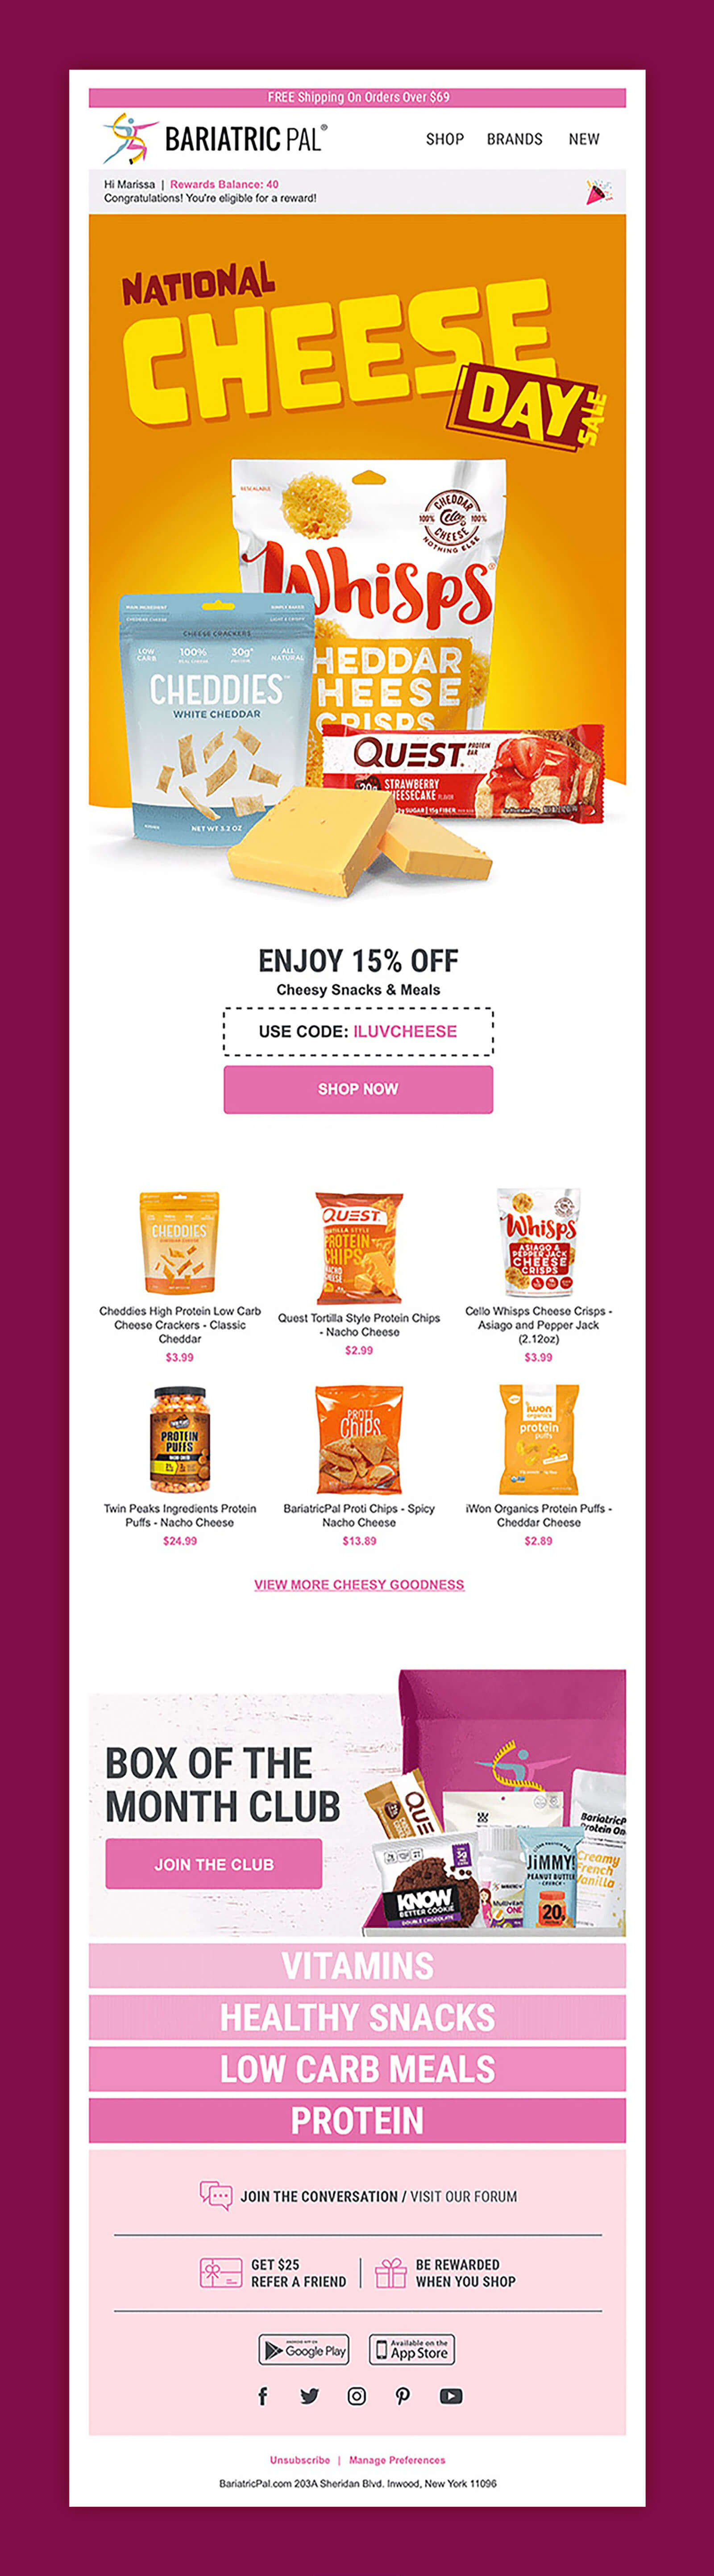 Email Agency Design of Klaviyo Graphic Featuring CPG Products With Cheese Promo